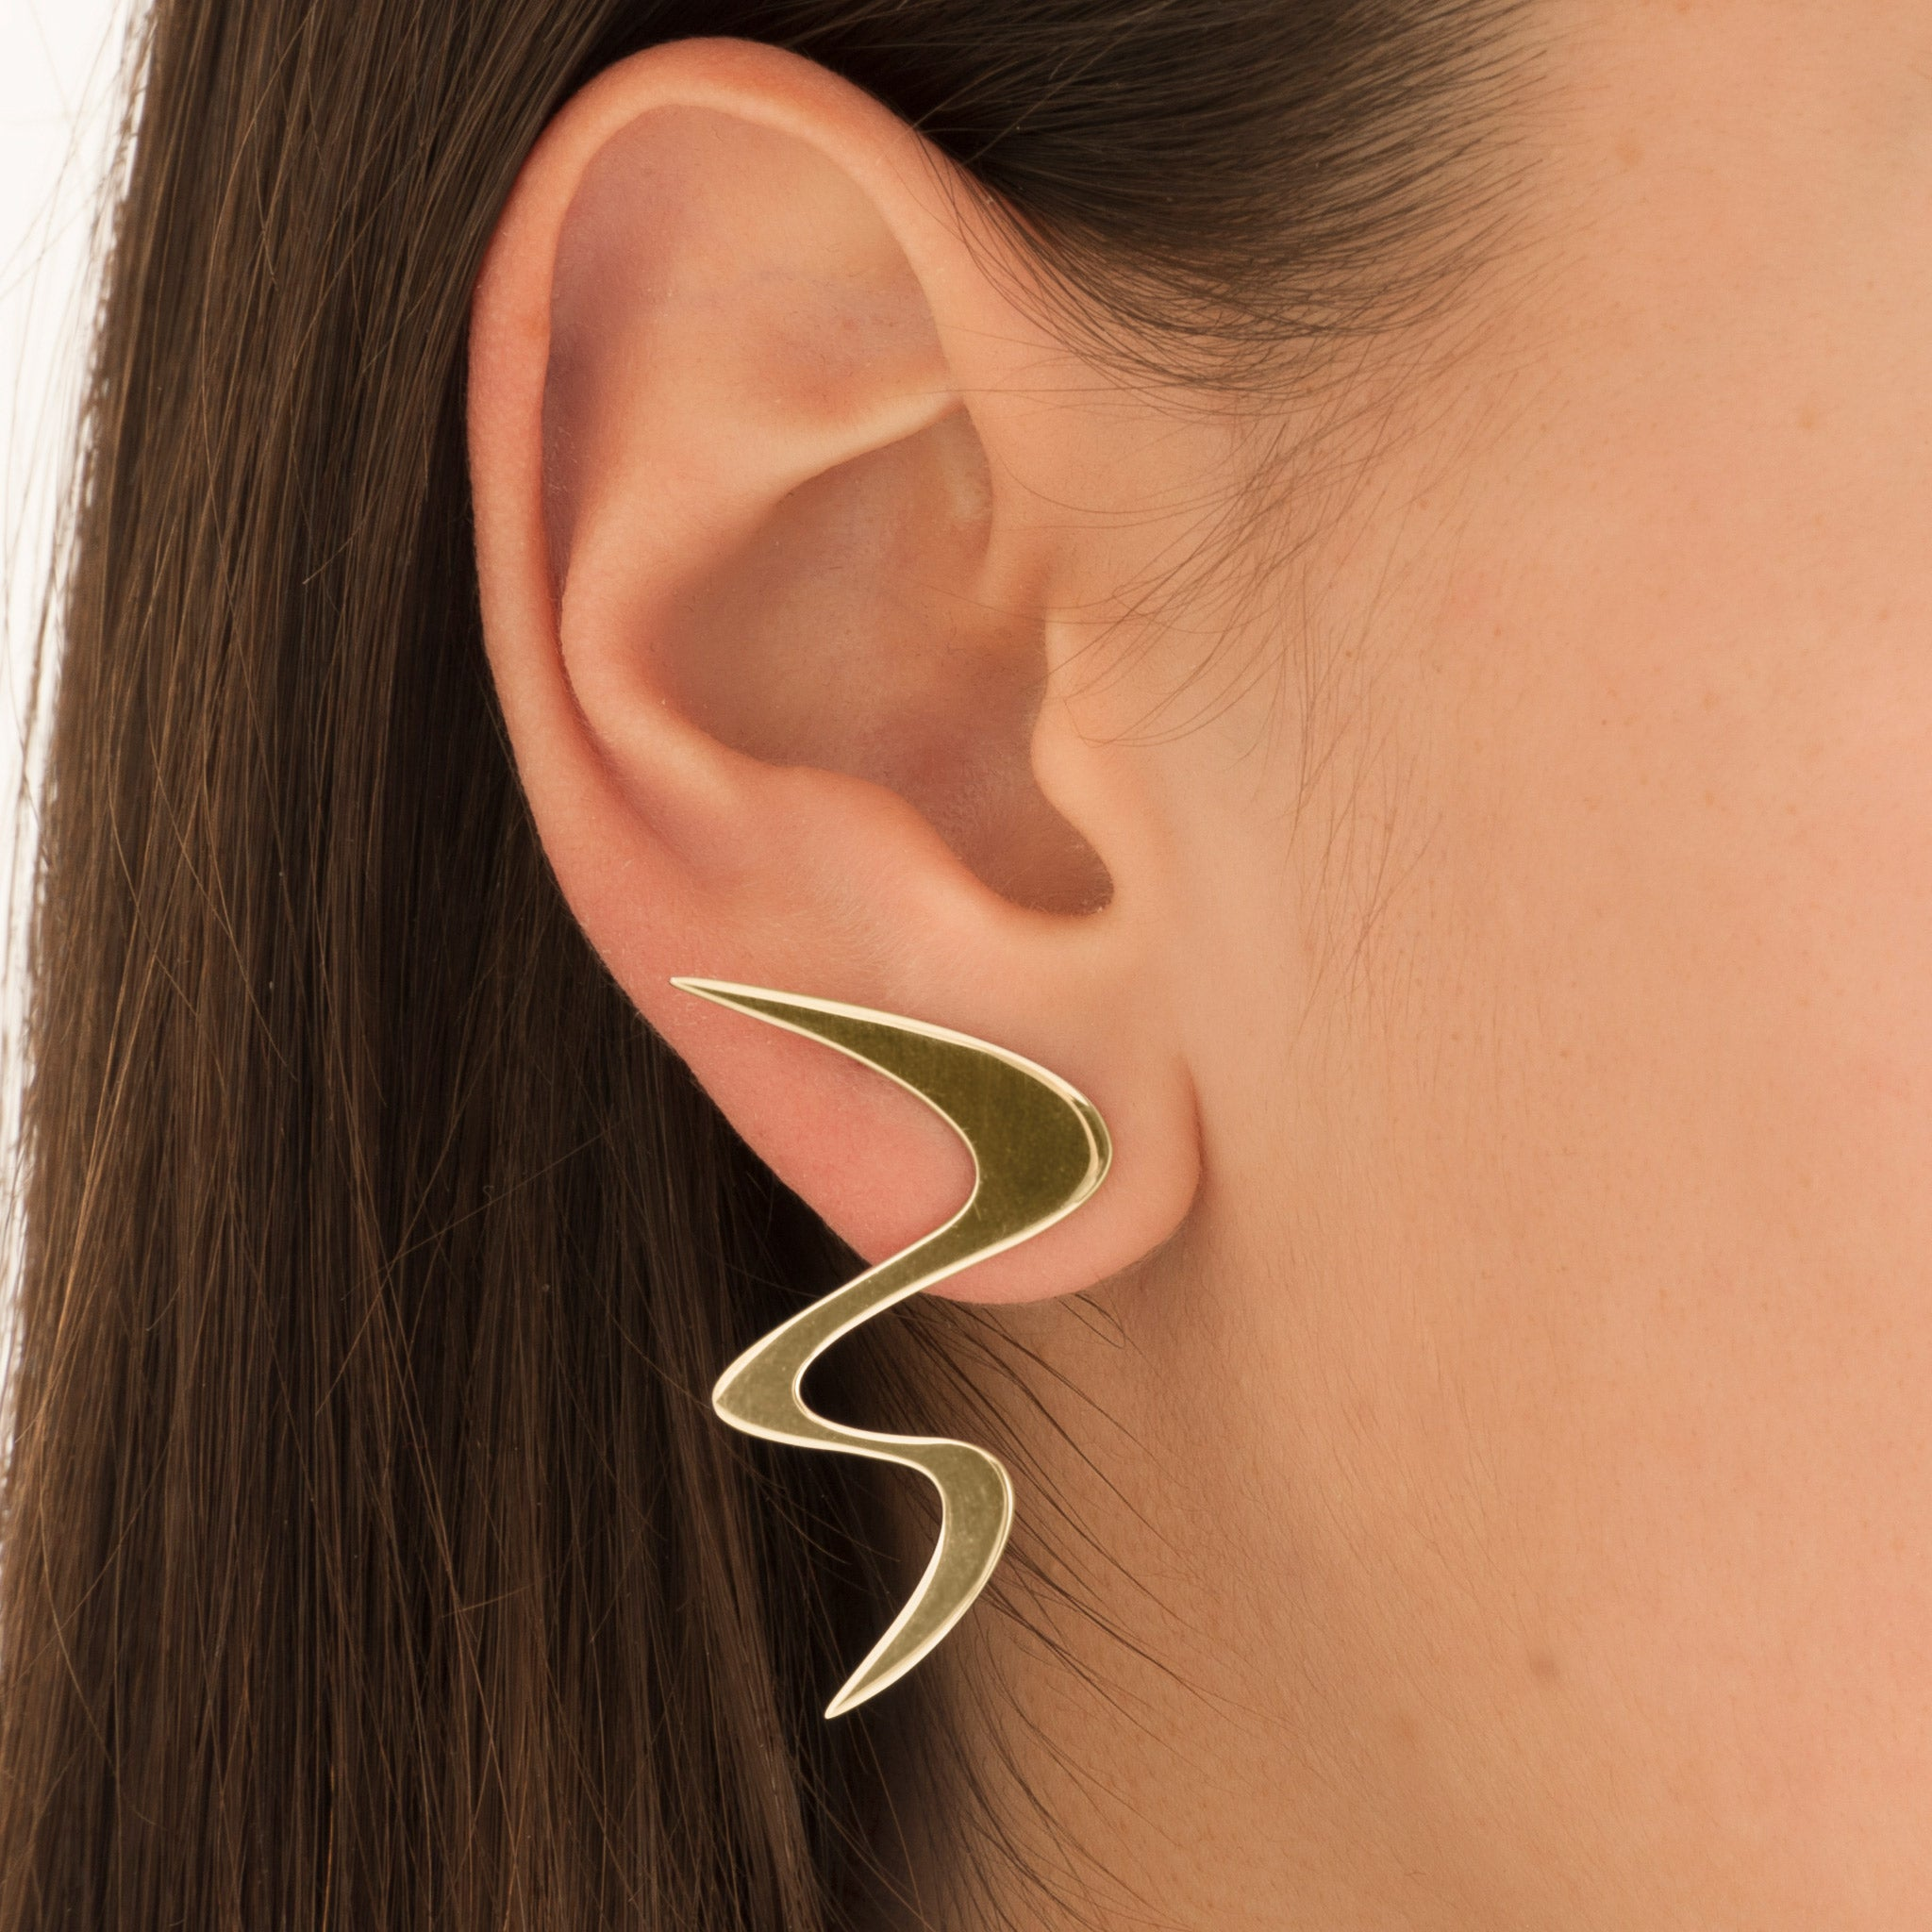 Ziggy Sterling silver earrings for women in yellow gold